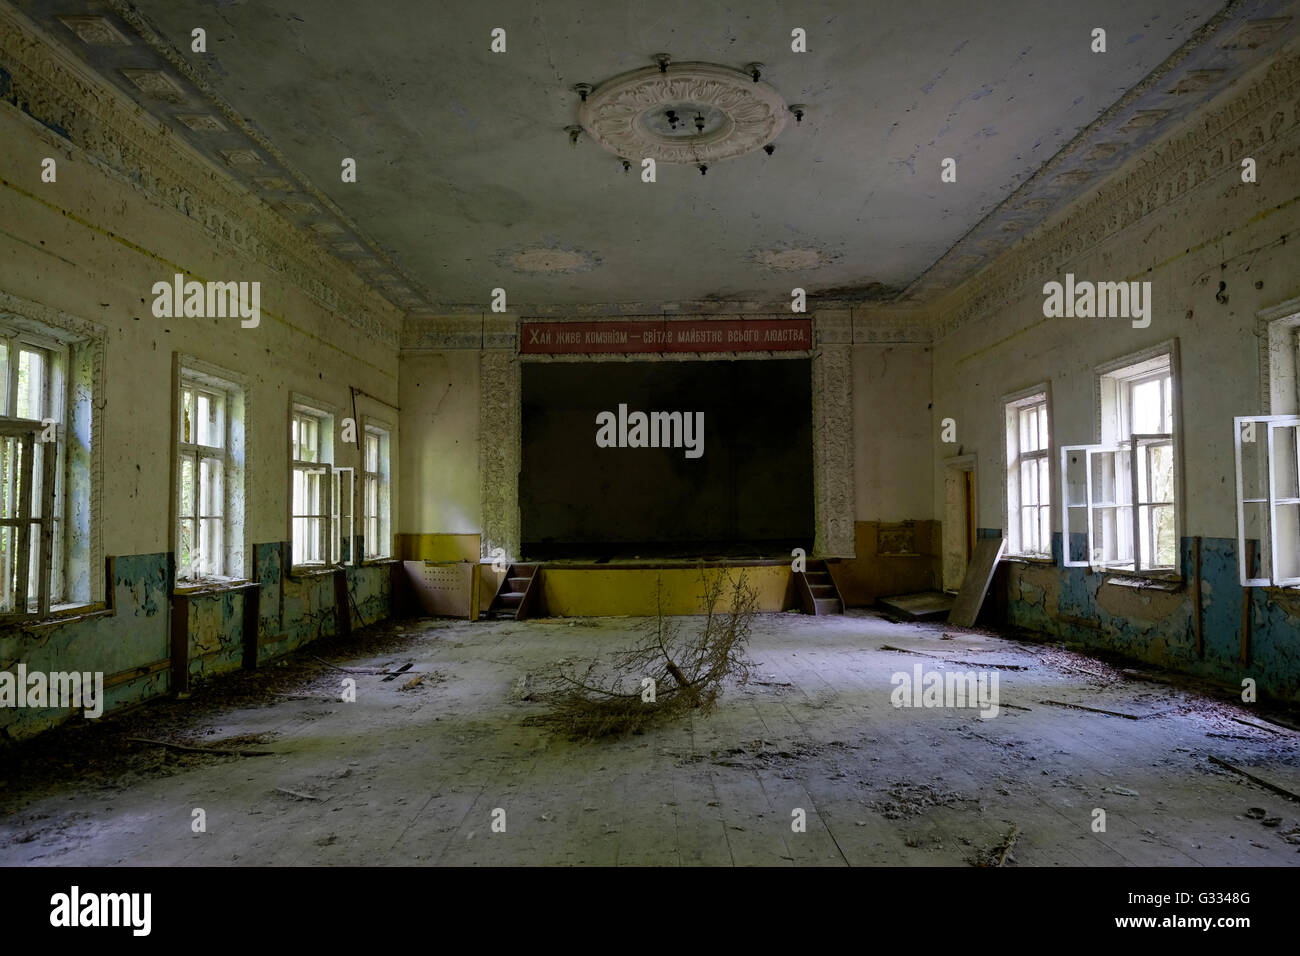 An abandoned culture house in Zalissya village located inside the Chernobyl Exclusion Zone in Ukraine on 04 June - Stock Image